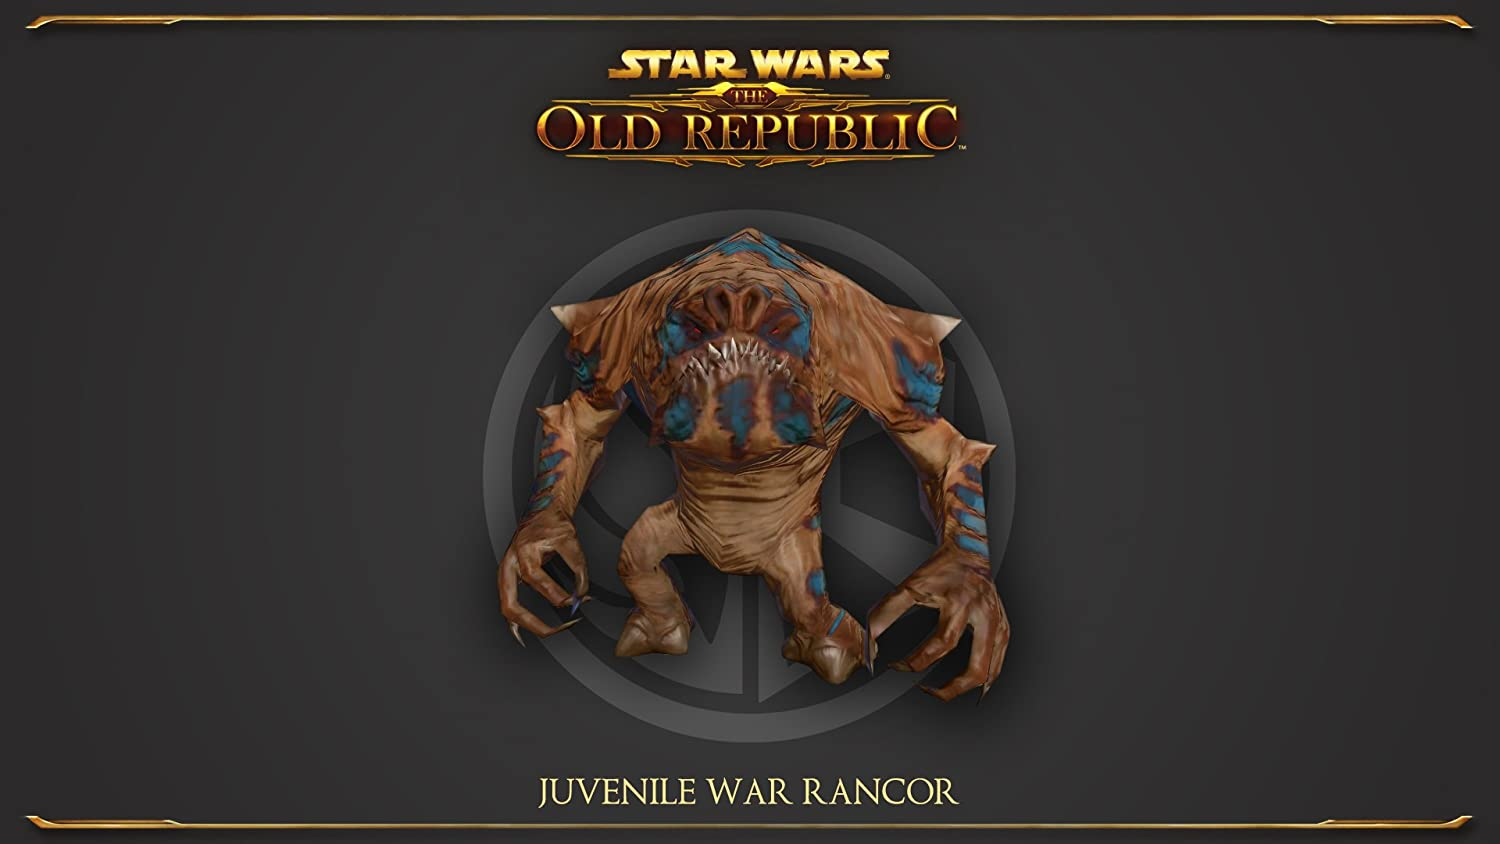 Star wars the old republic 2400 cartel coins exclusive item pc star wars the old republic 2400 cartel coins exclusive item pc online code amazon pc video games fandeluxe Image collections